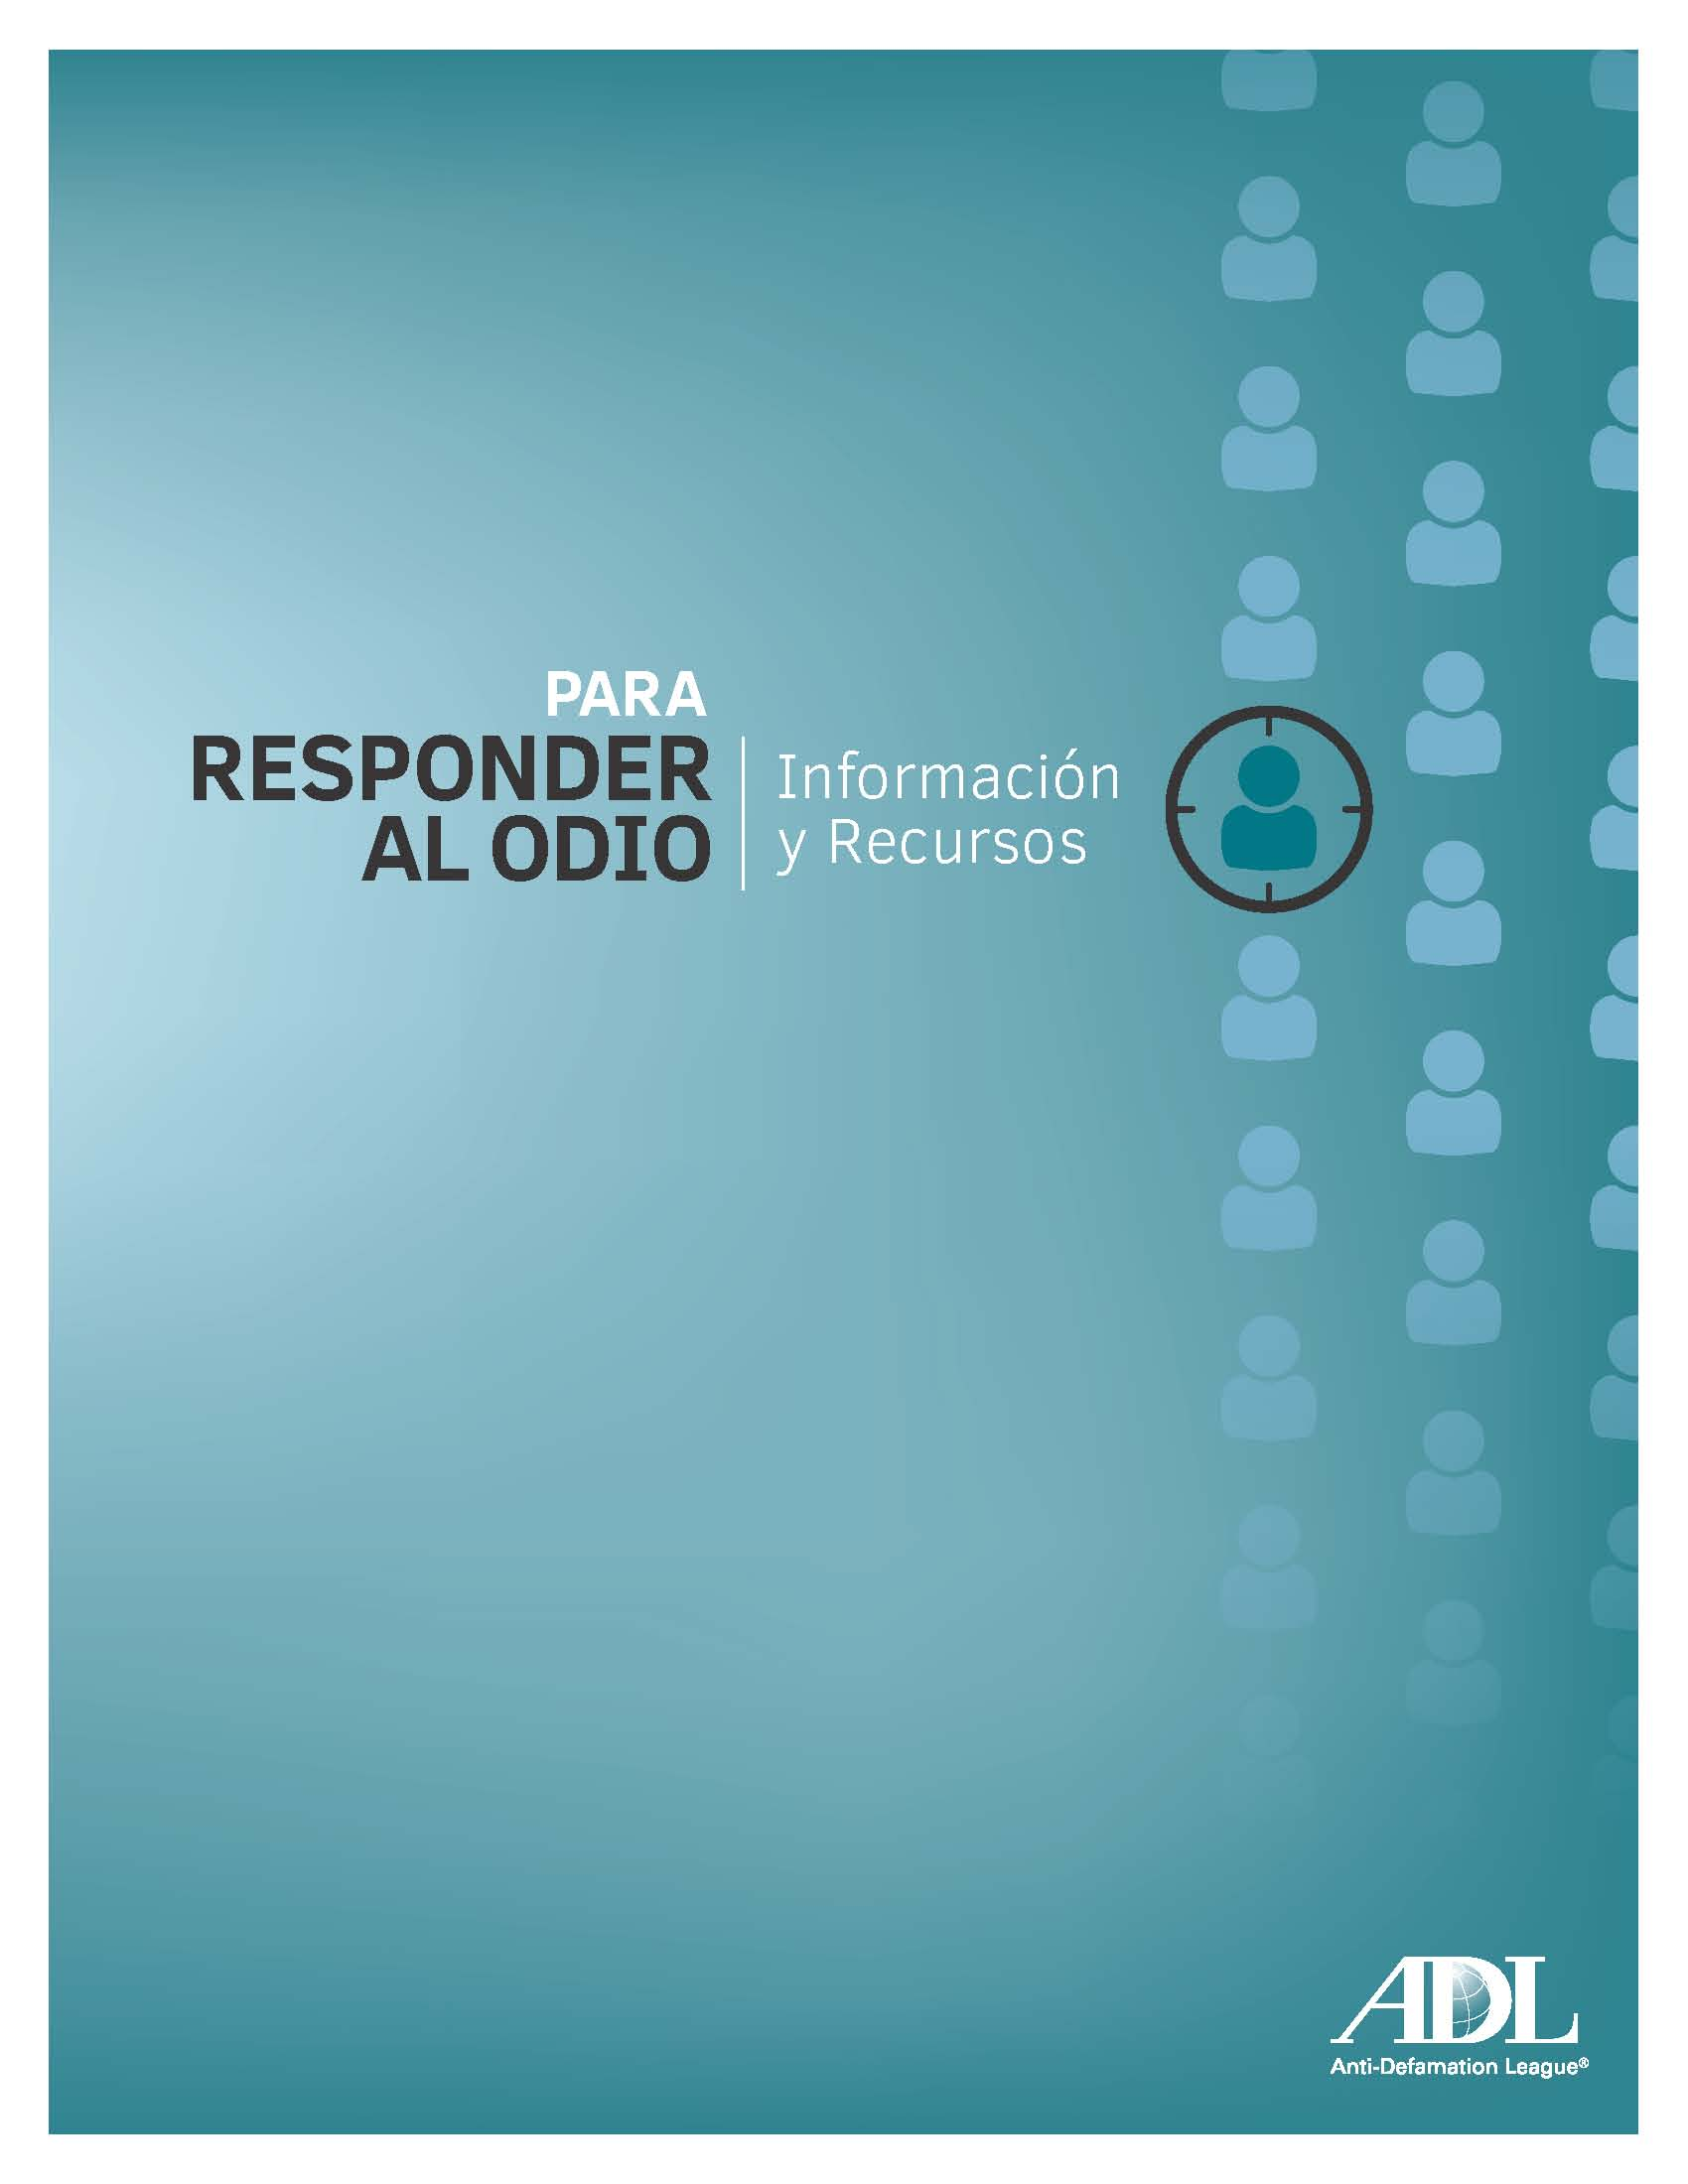 Responding to Hate: Information and Resources - Spanish Version